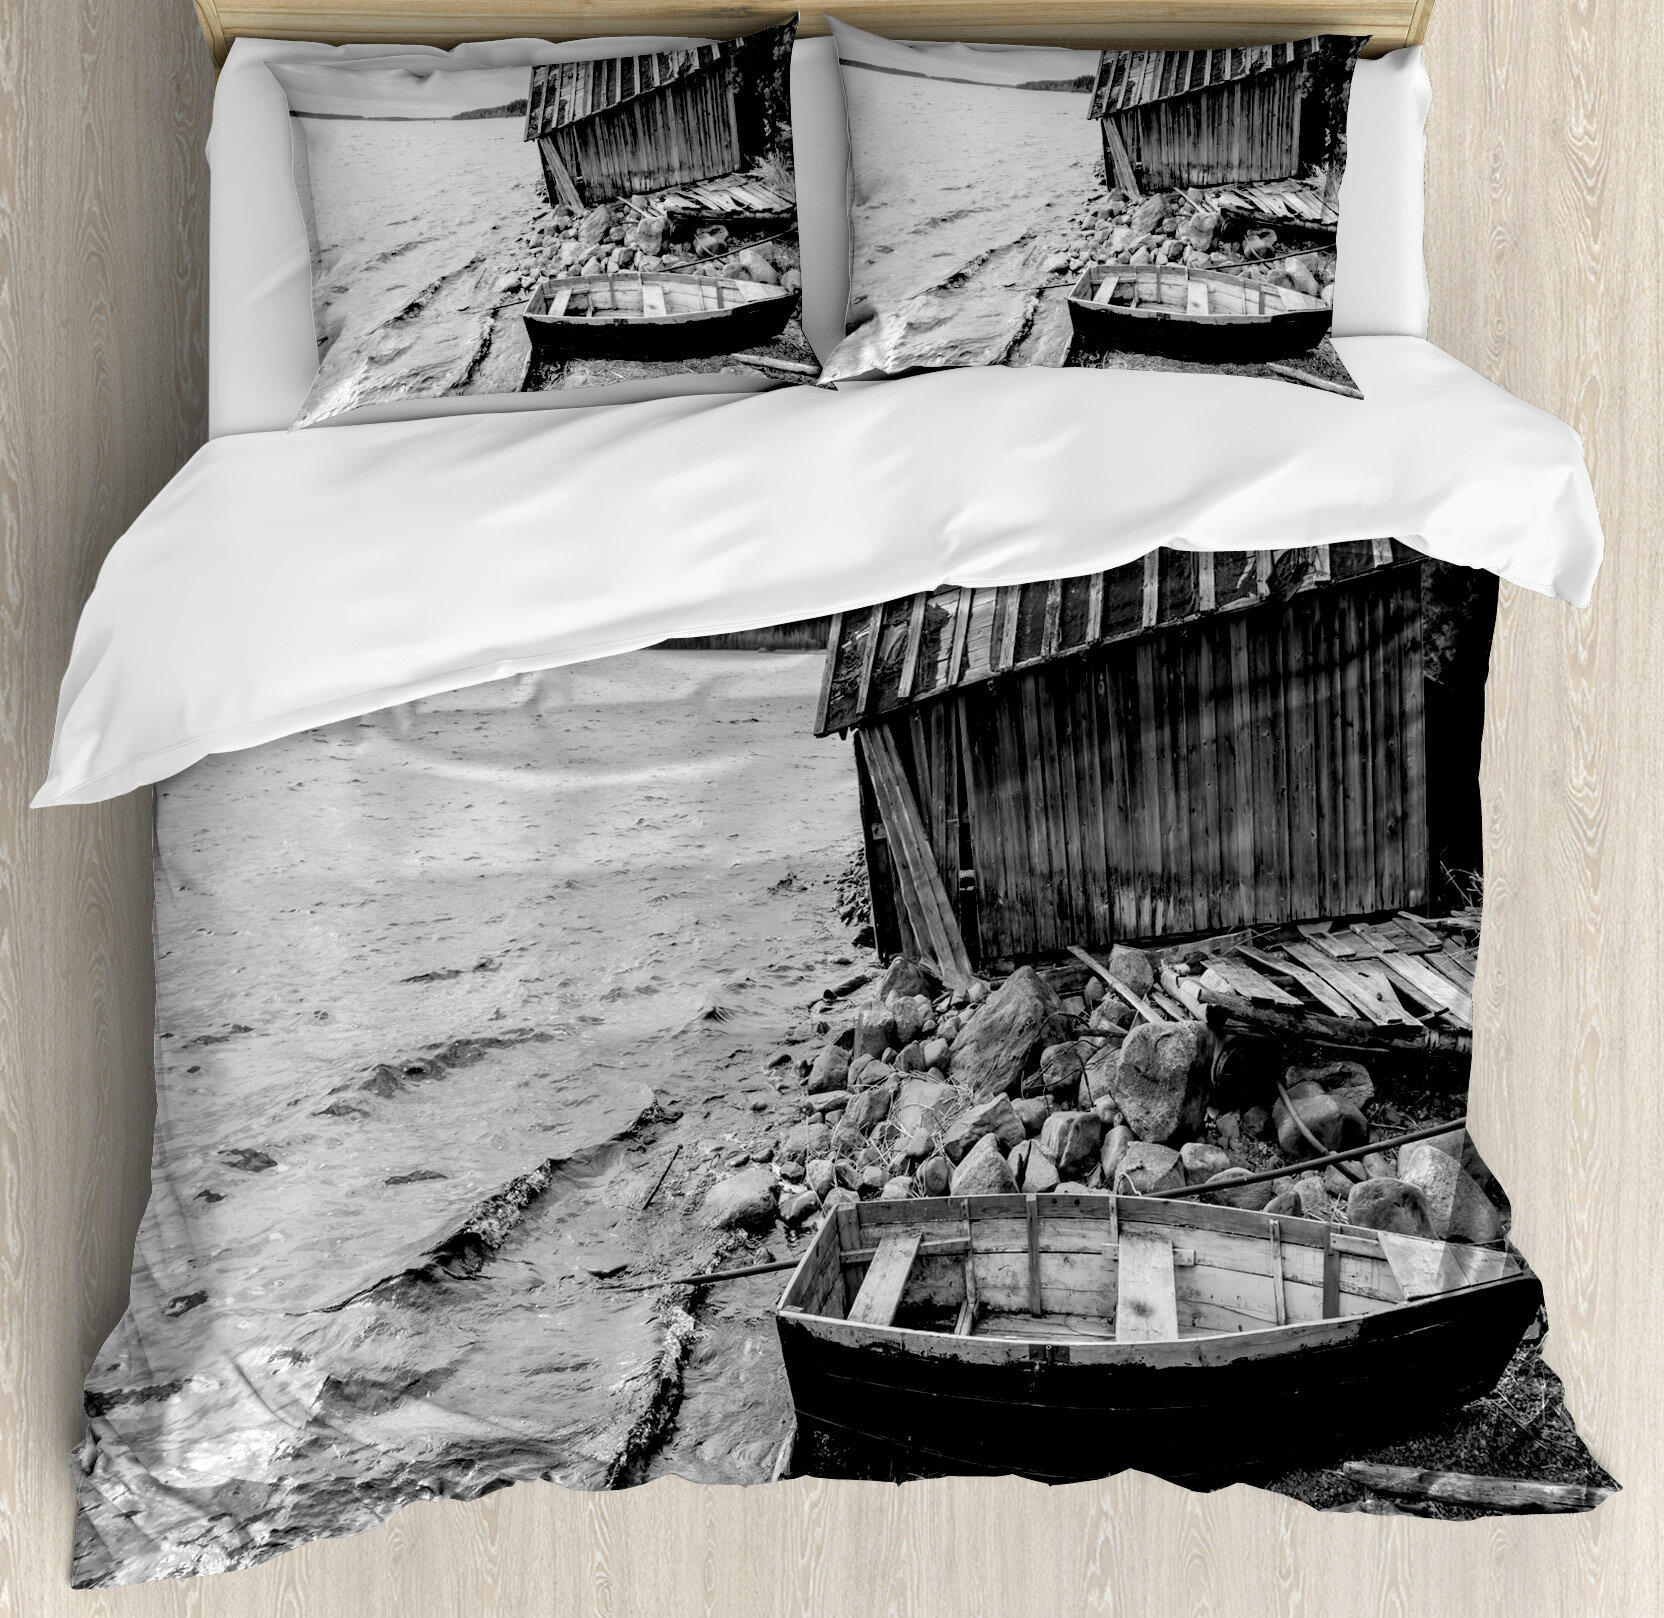 East Urban Home Black And White Decor King Size Duvet Cover Set Old